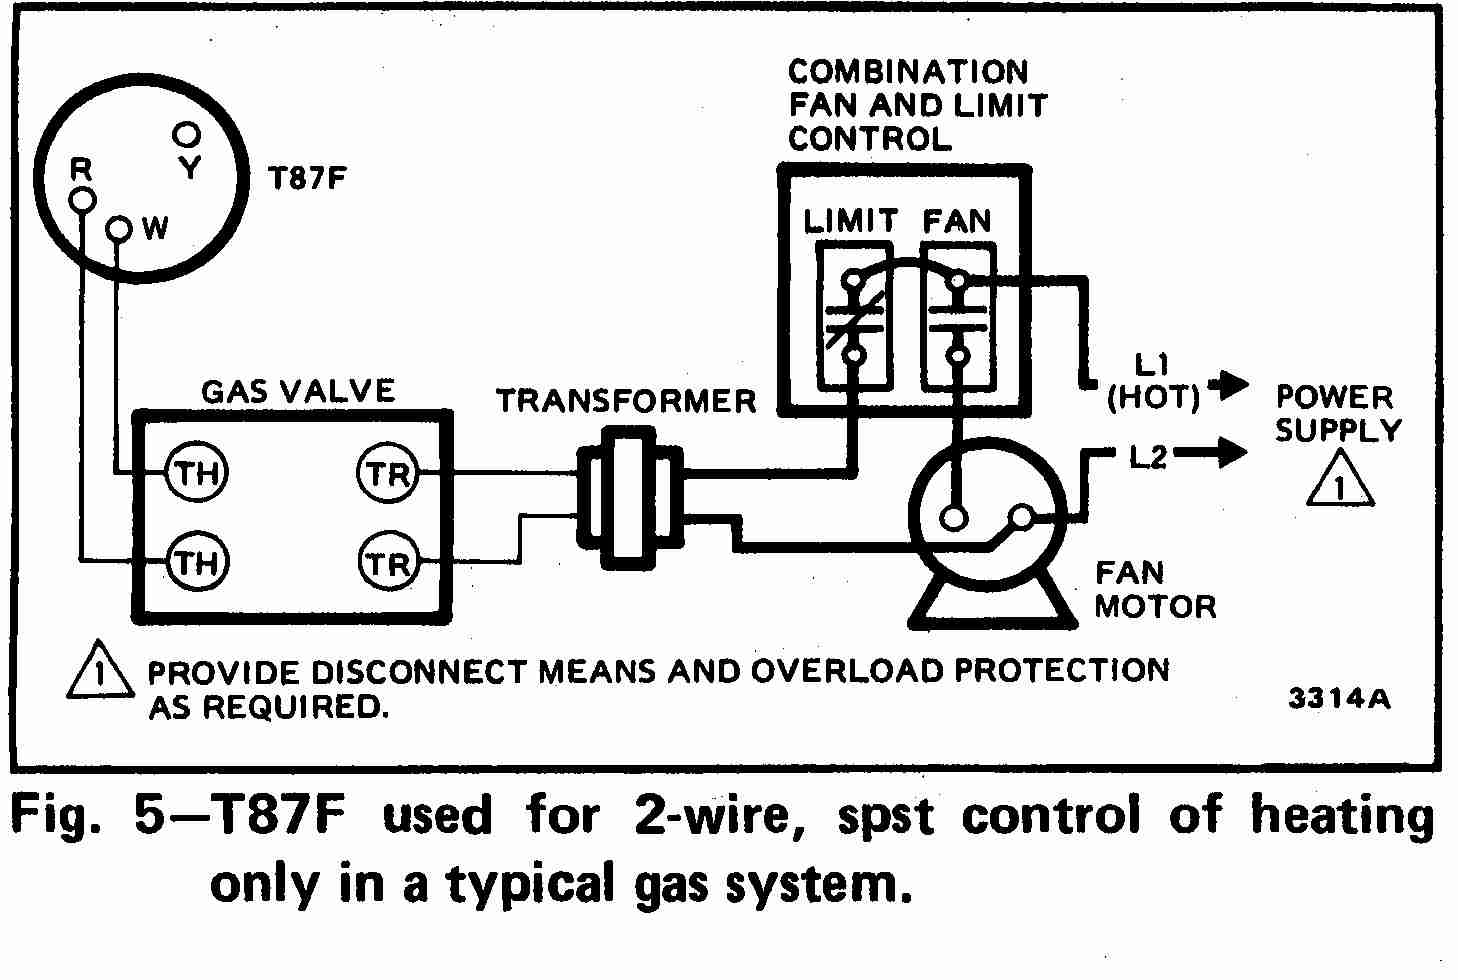 heat pump air handler wiring with Thermostat Wiring Instructions on Blower Door Interlock Switch furthermore Post goodman Aruf Wiring Diagram 514561 moreover Honeywell Smart Switch Wiring Diagram furthermore Home Air Conditioner Electrical Diagram additionally Trane Xe90 Furnace Thermostat Wiring Diagrams.